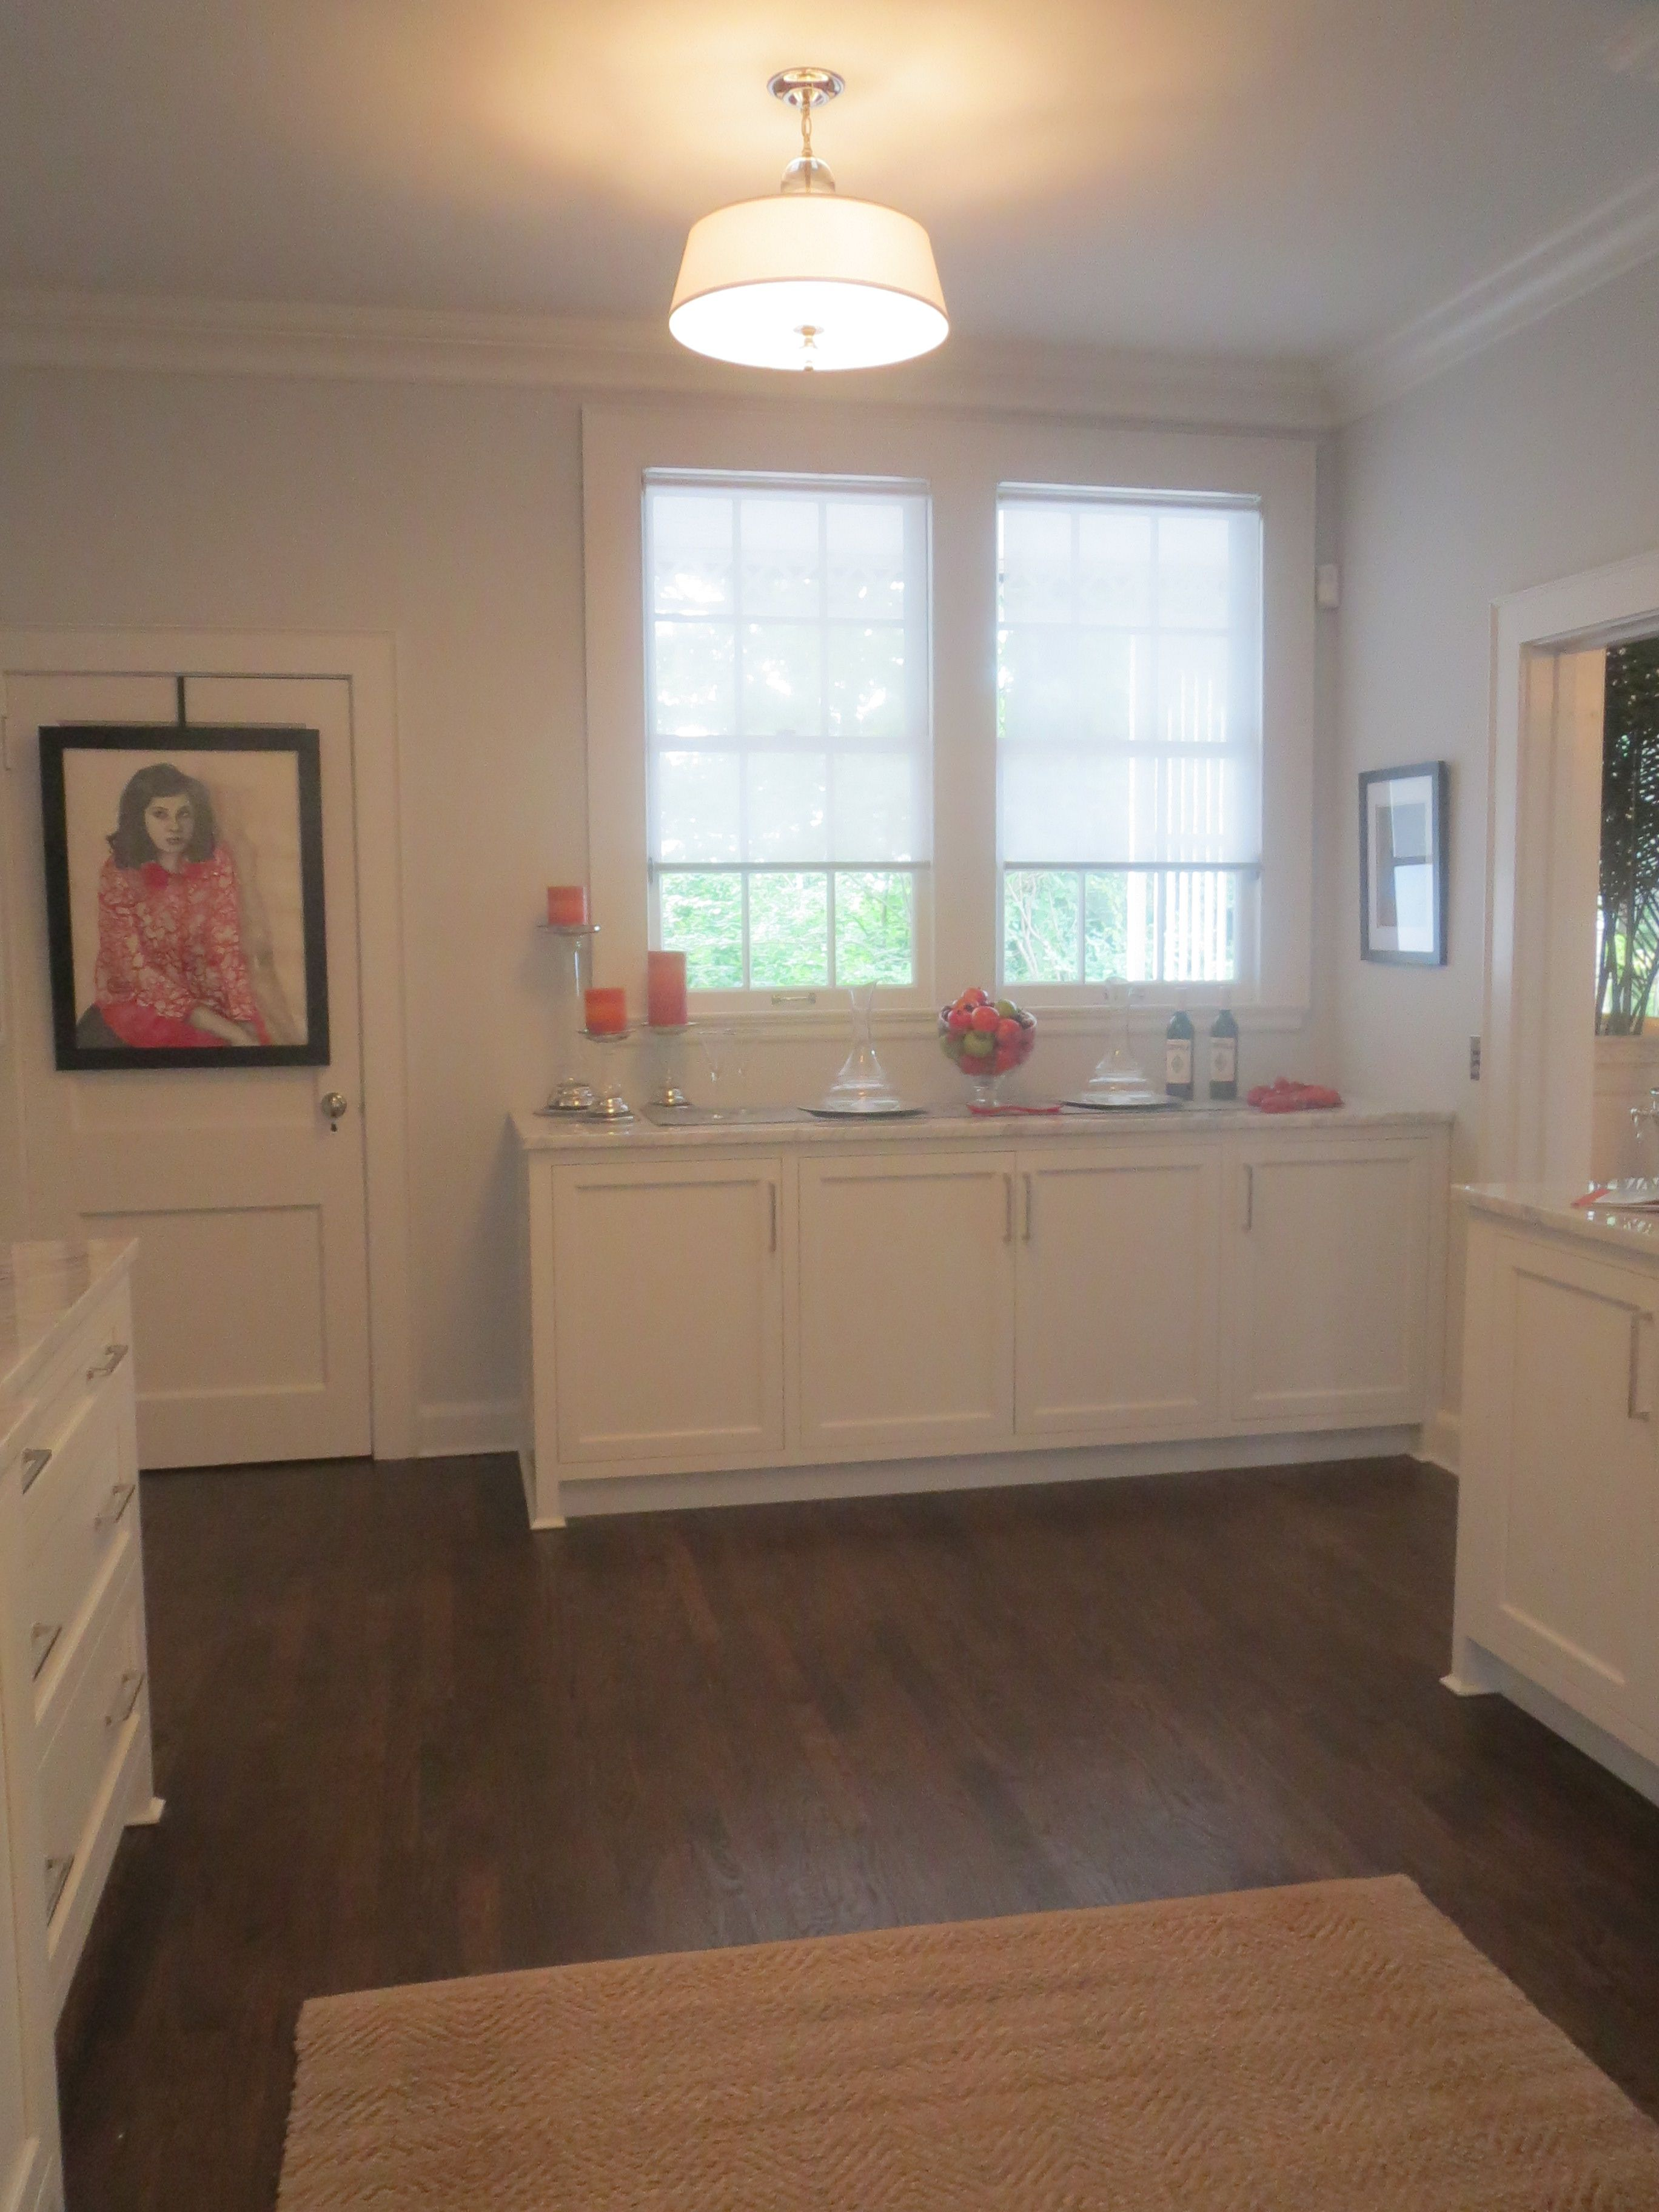 Butlers Pantry By Mary Gray Lightstorm Inc Kitchen And Bath Design